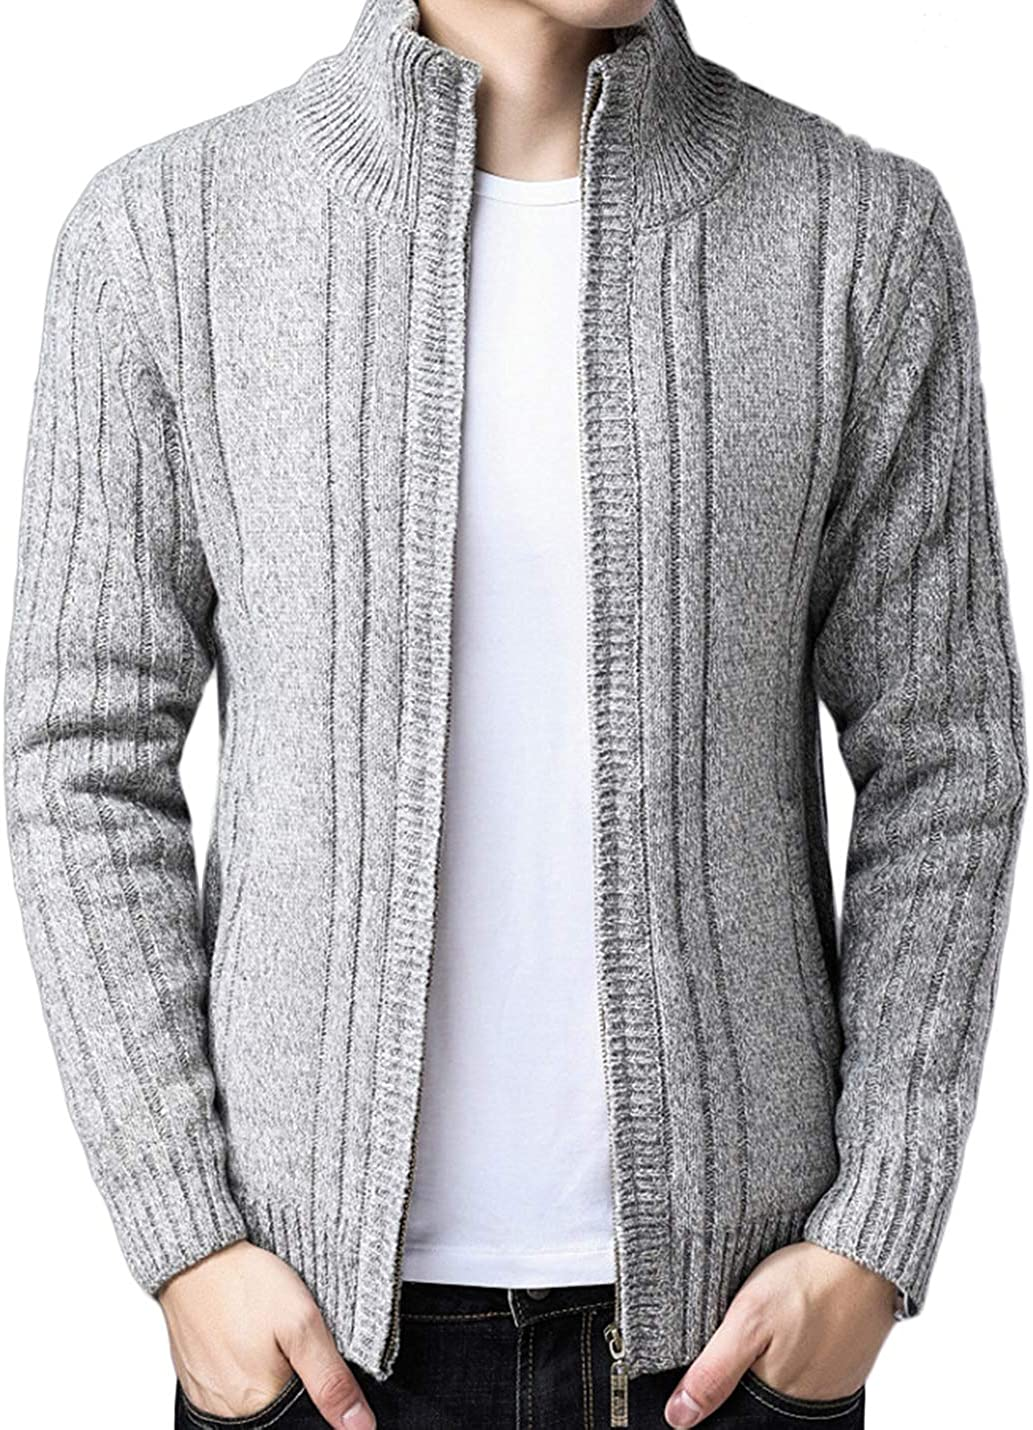 Lentta Mens Slim Fit Solid Stand Collar Full Zip Up Sherpa Lined Cardigan Sweater